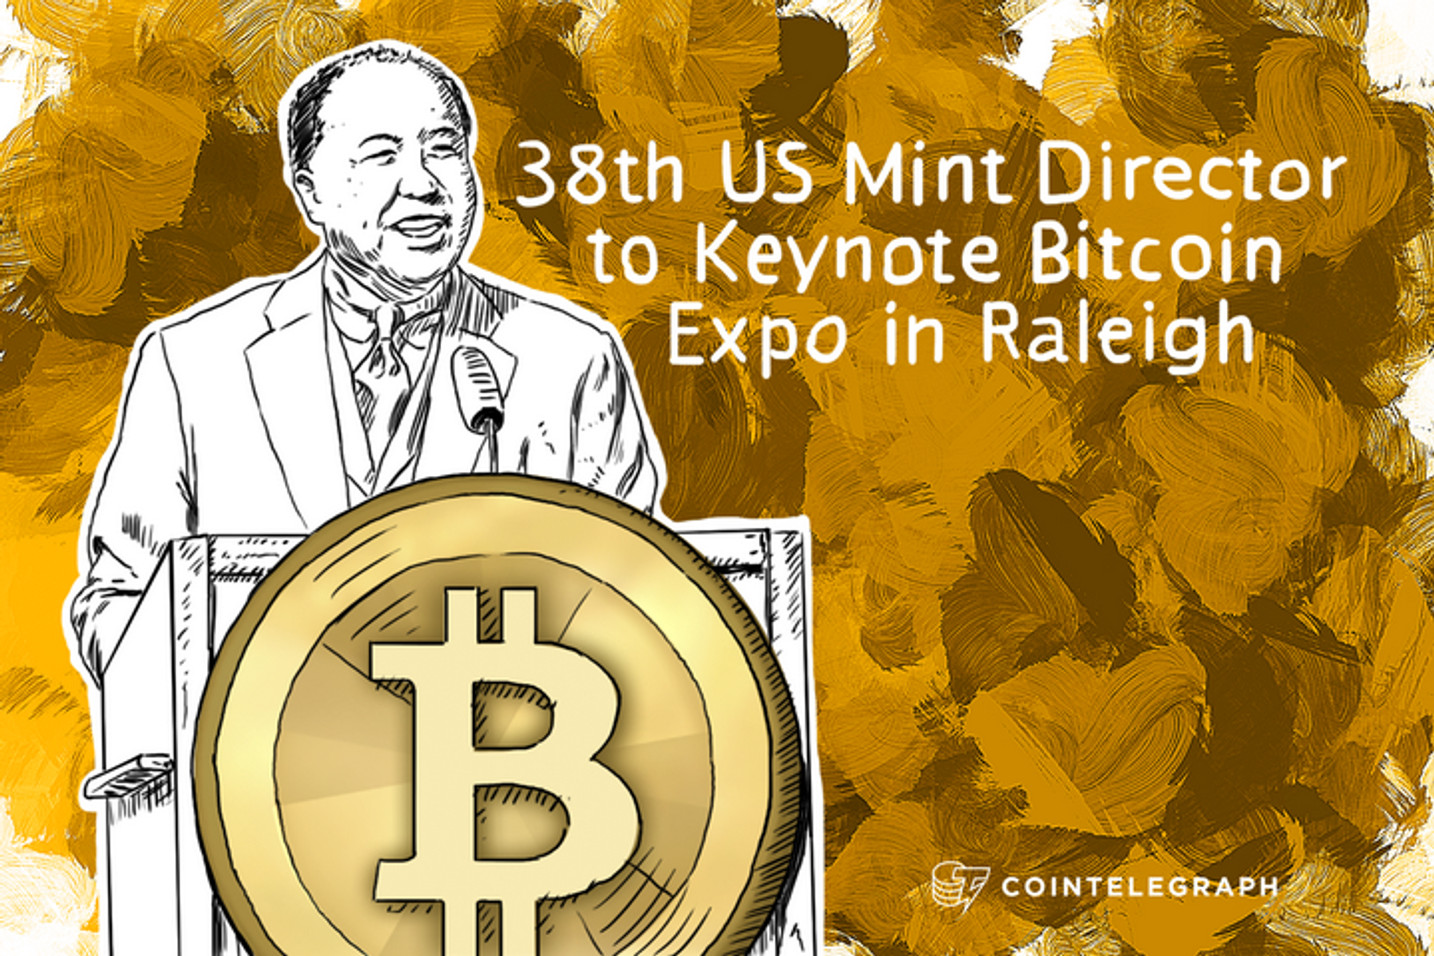 38th US Mint Director to Keynote Bitcoin Expo in Raleigh